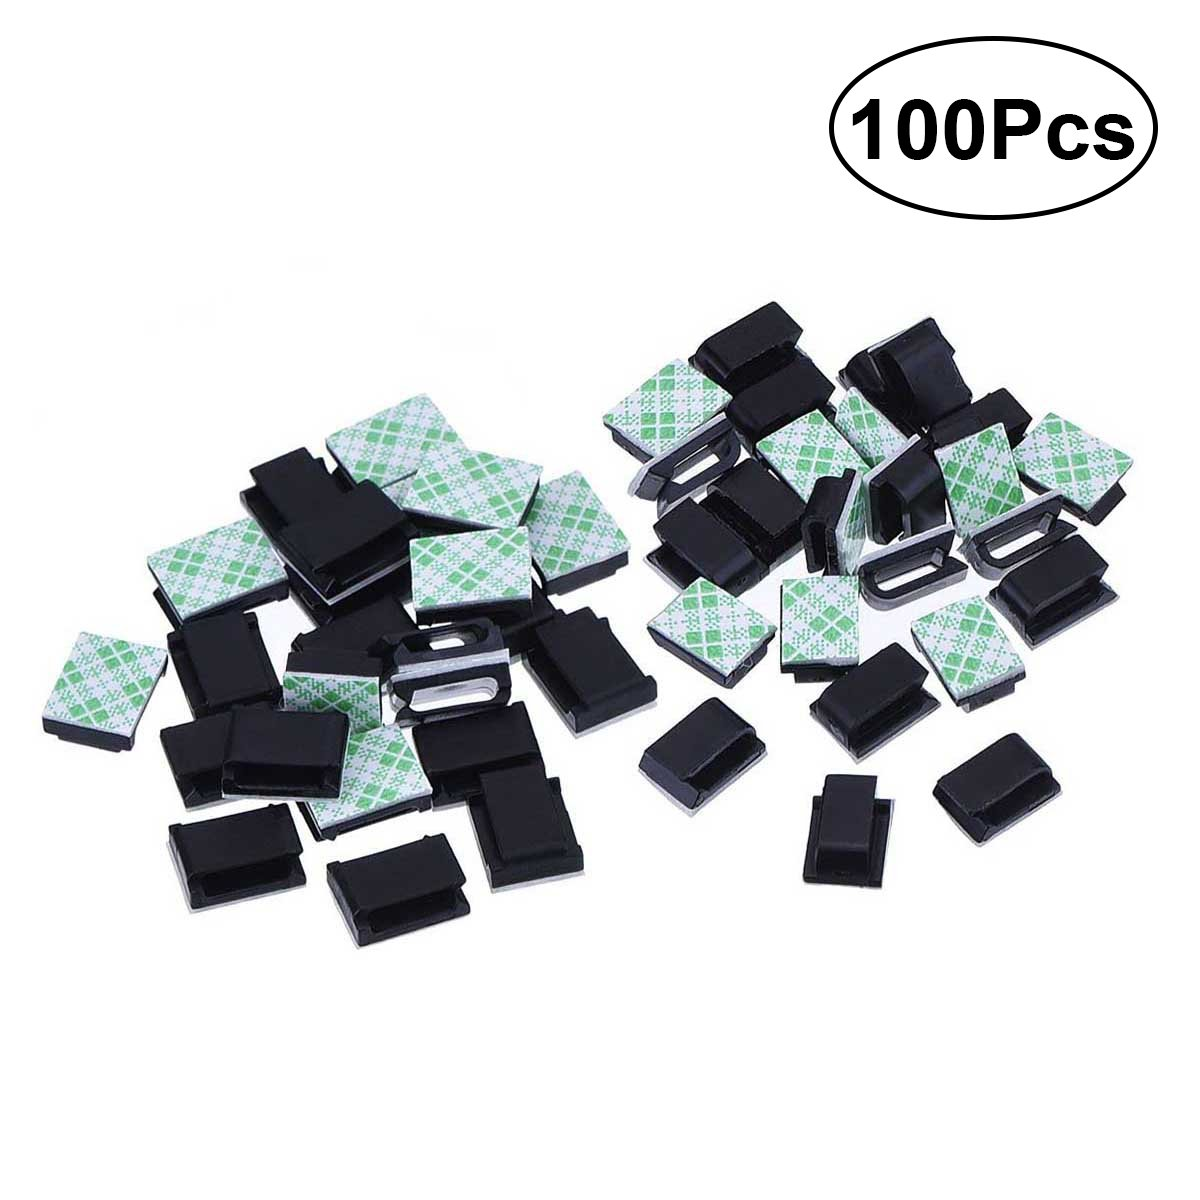 OUNONA 100PCS Adhesive Cable Mount Cable Ties Holder for Car Office and Home